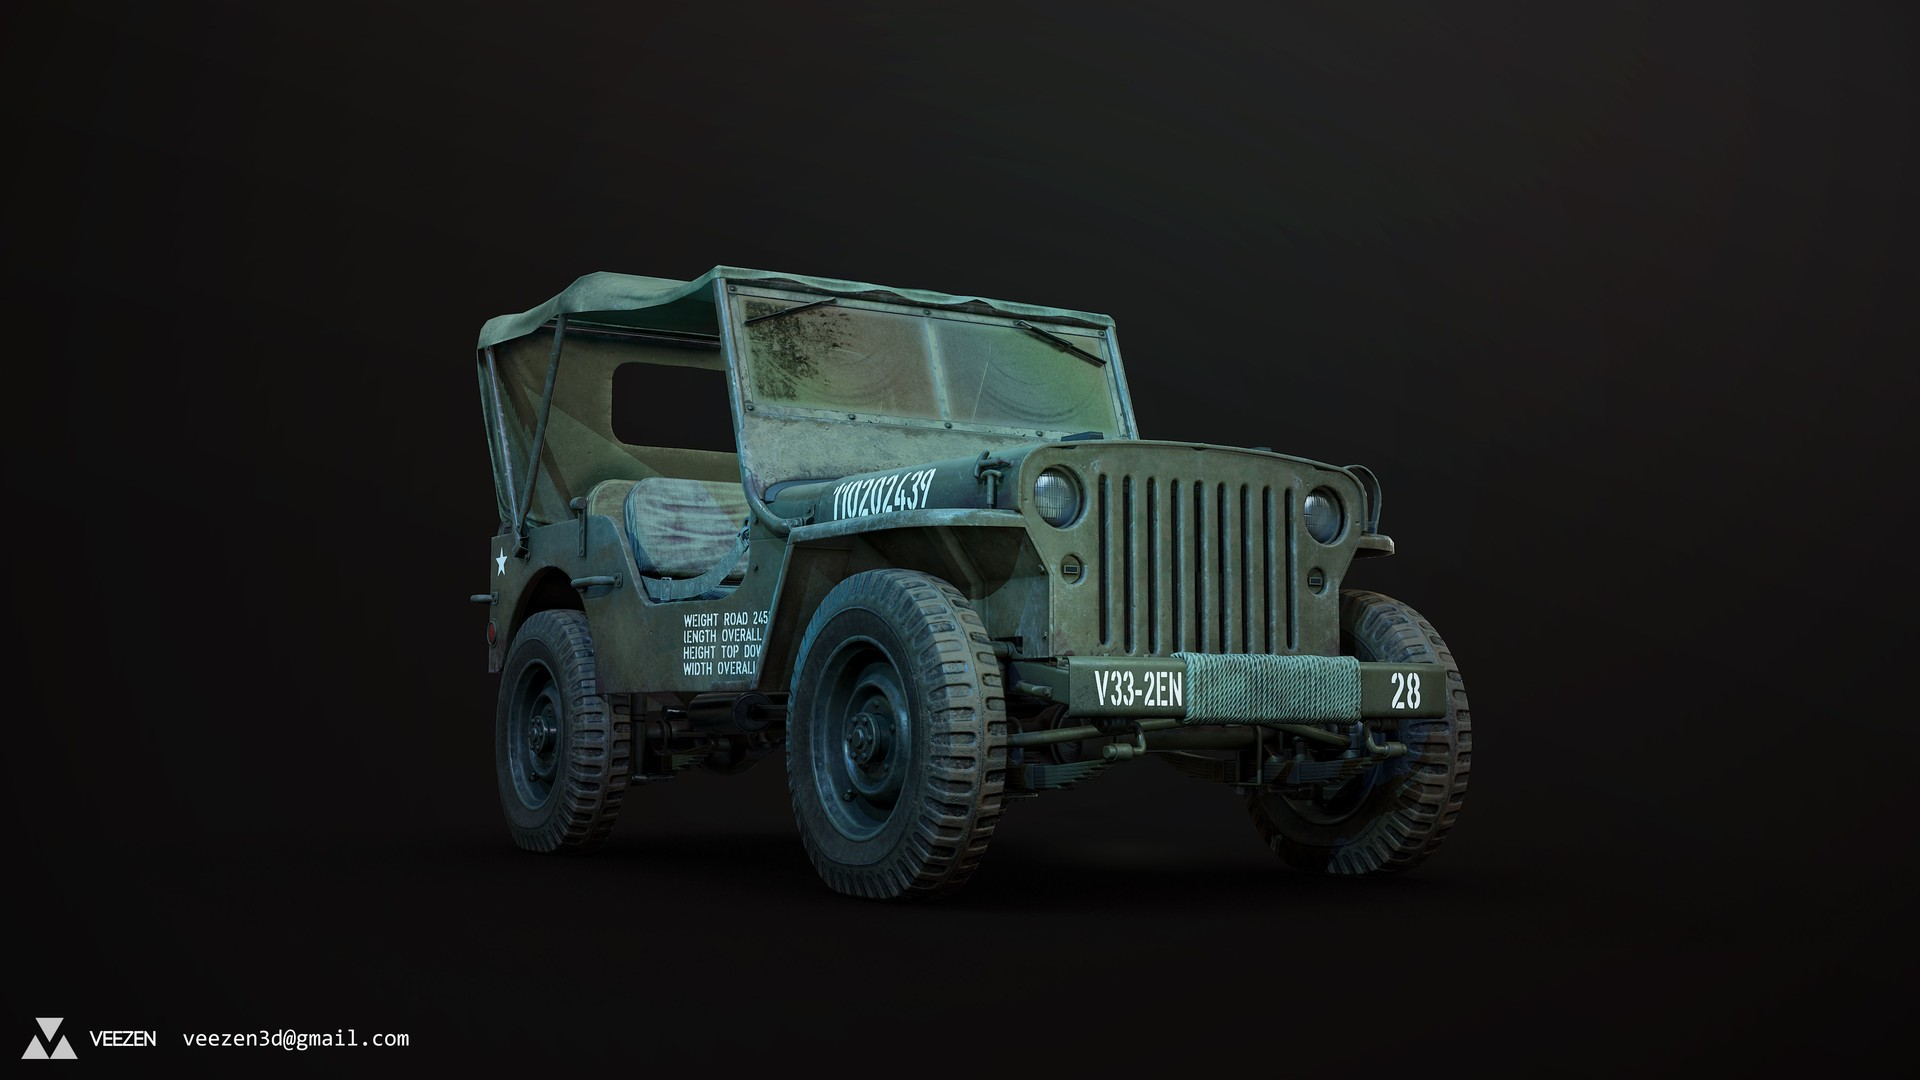 Michal veezen kalisz lp jeepwillys 02 compressed